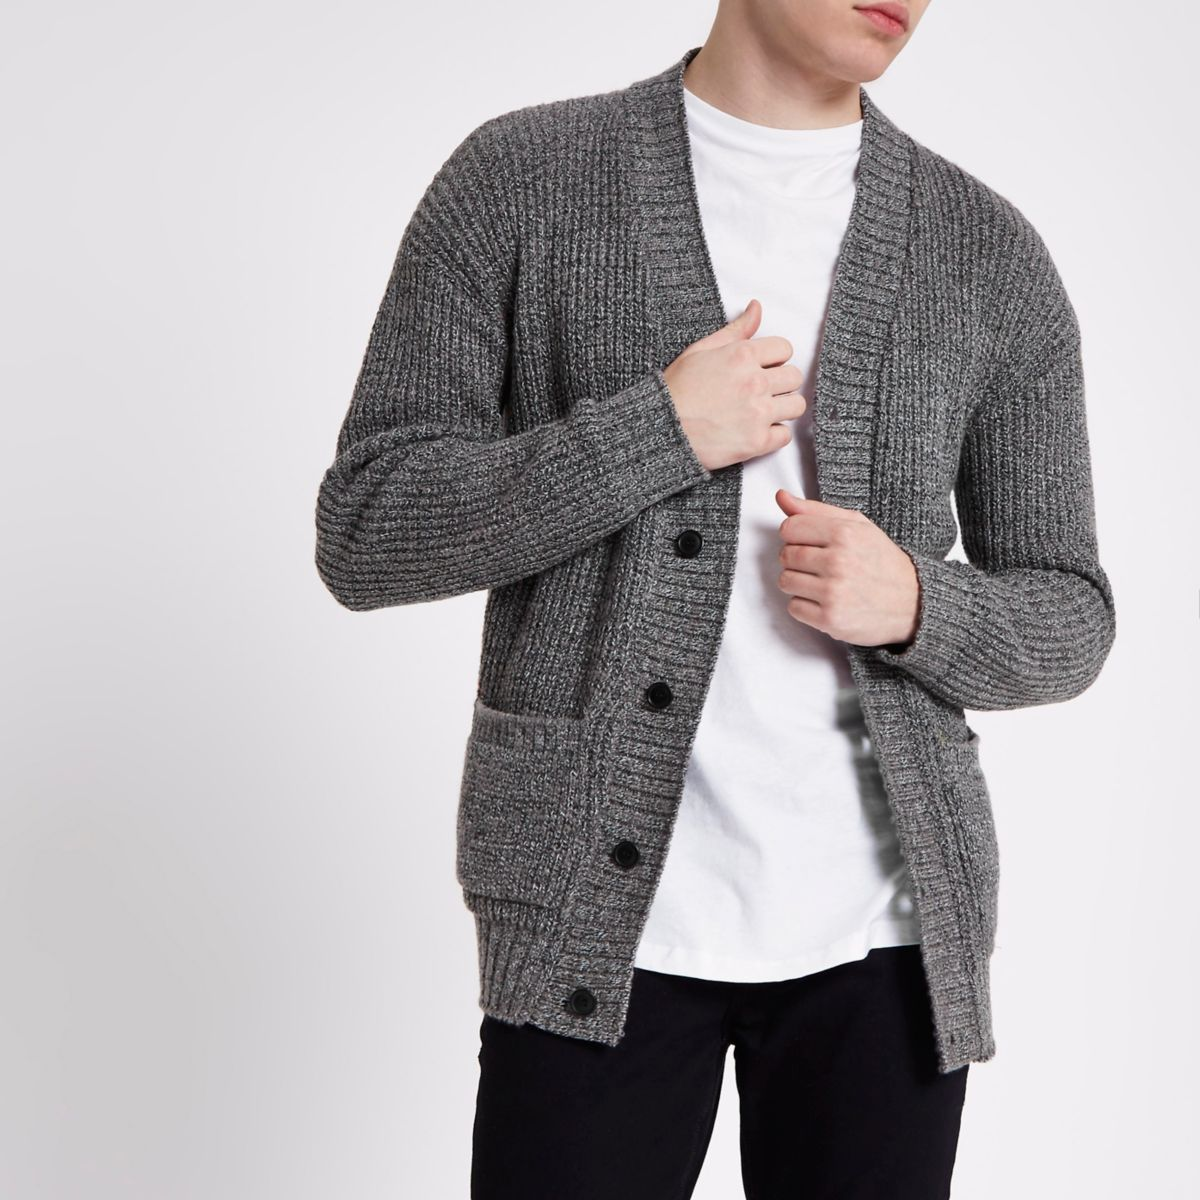 Grey Textured Knit Slim Fit Cardigan by River Island